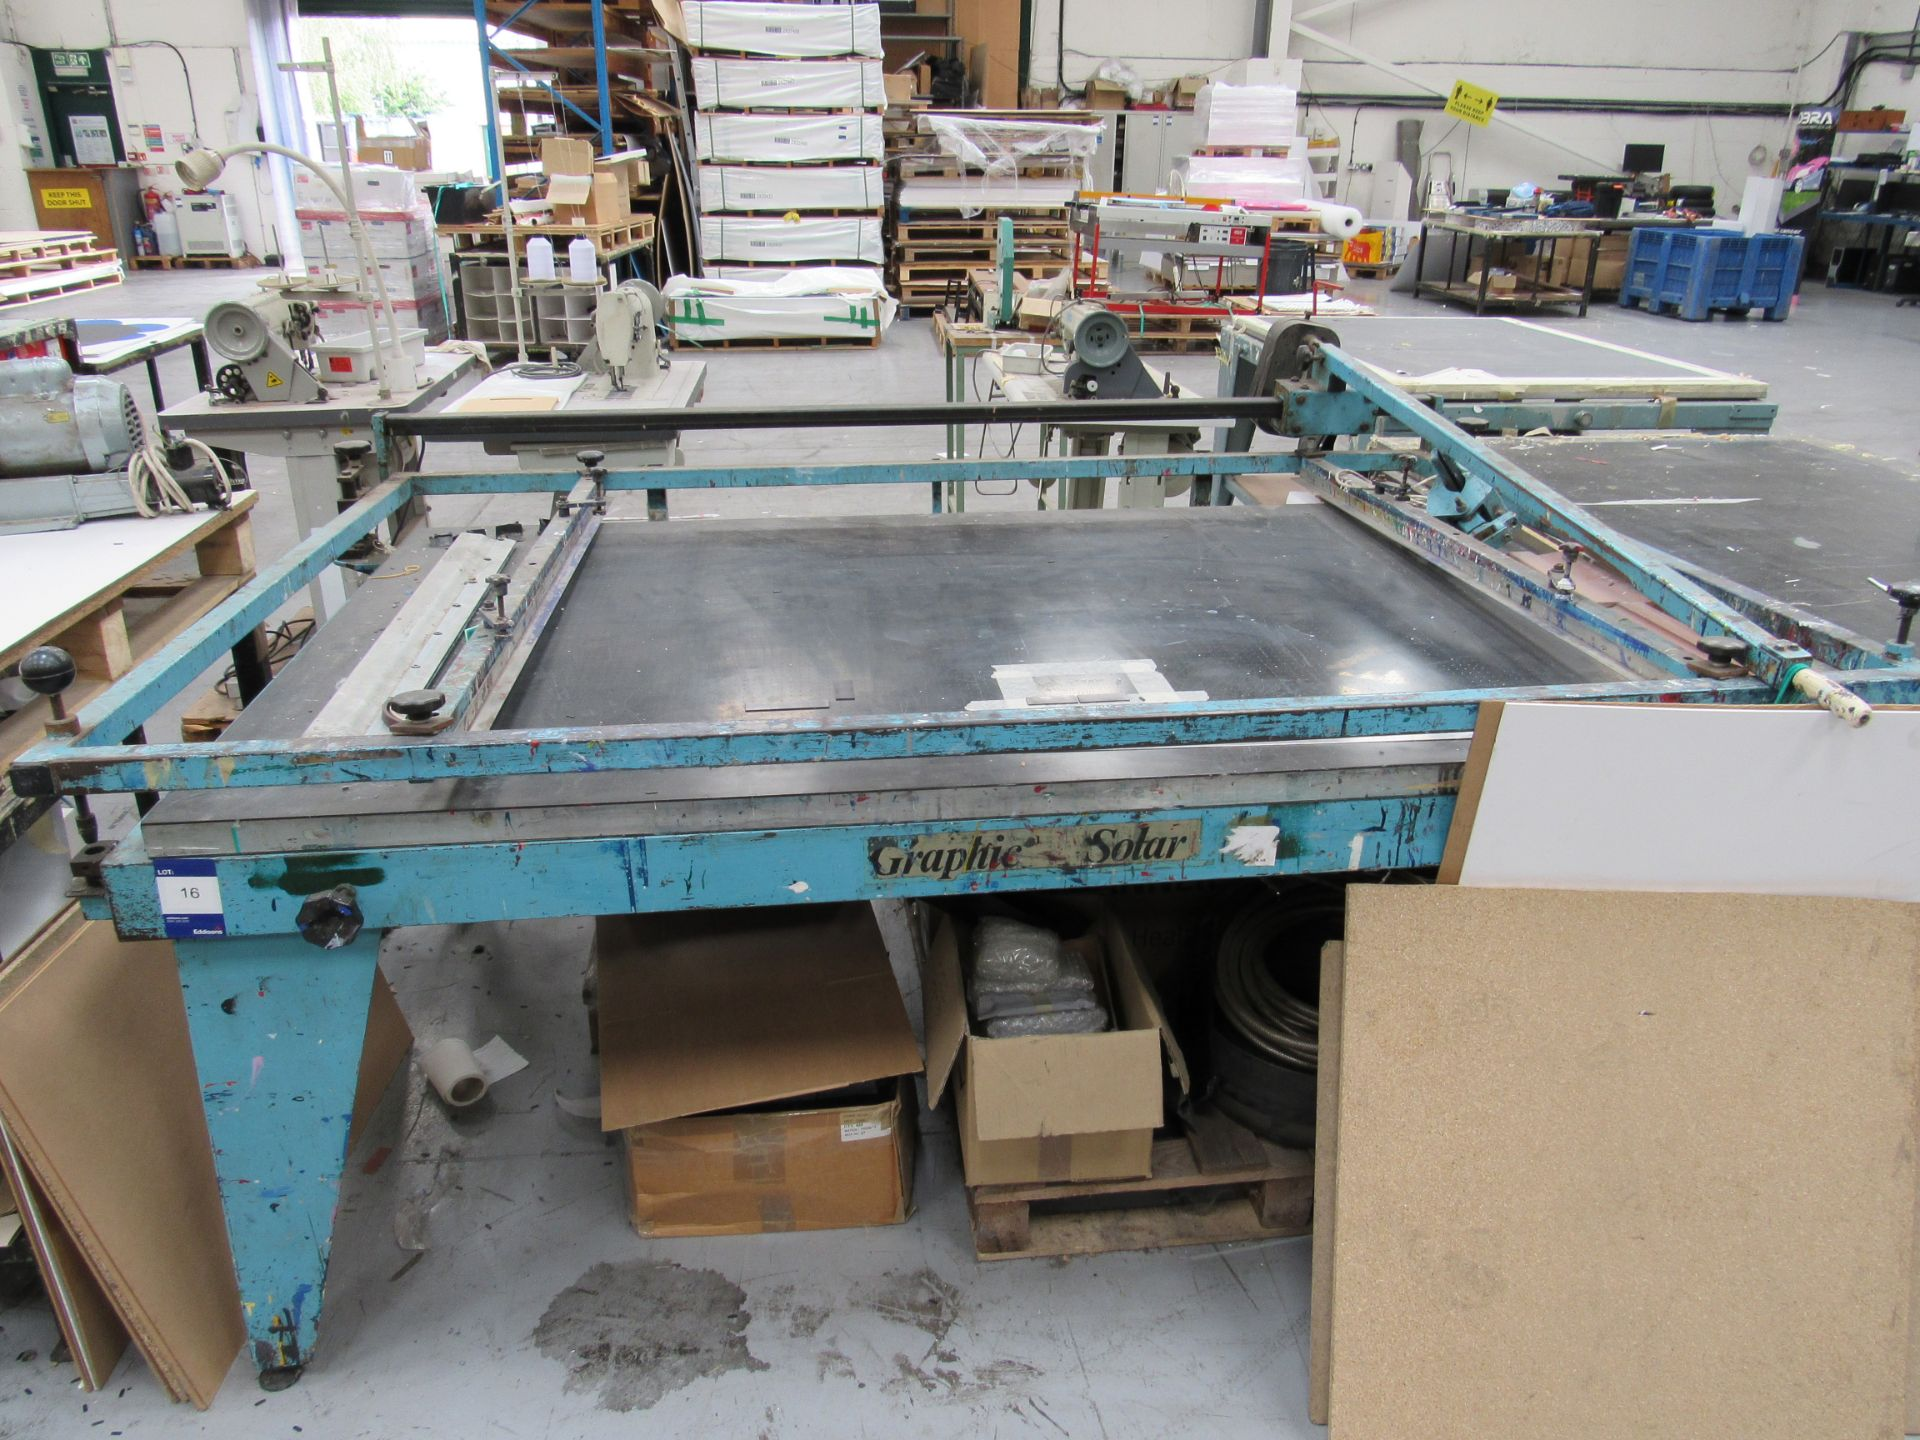 Graphic Solar Screen Printing Table 2100 x 1250mm - Image 2 of 2